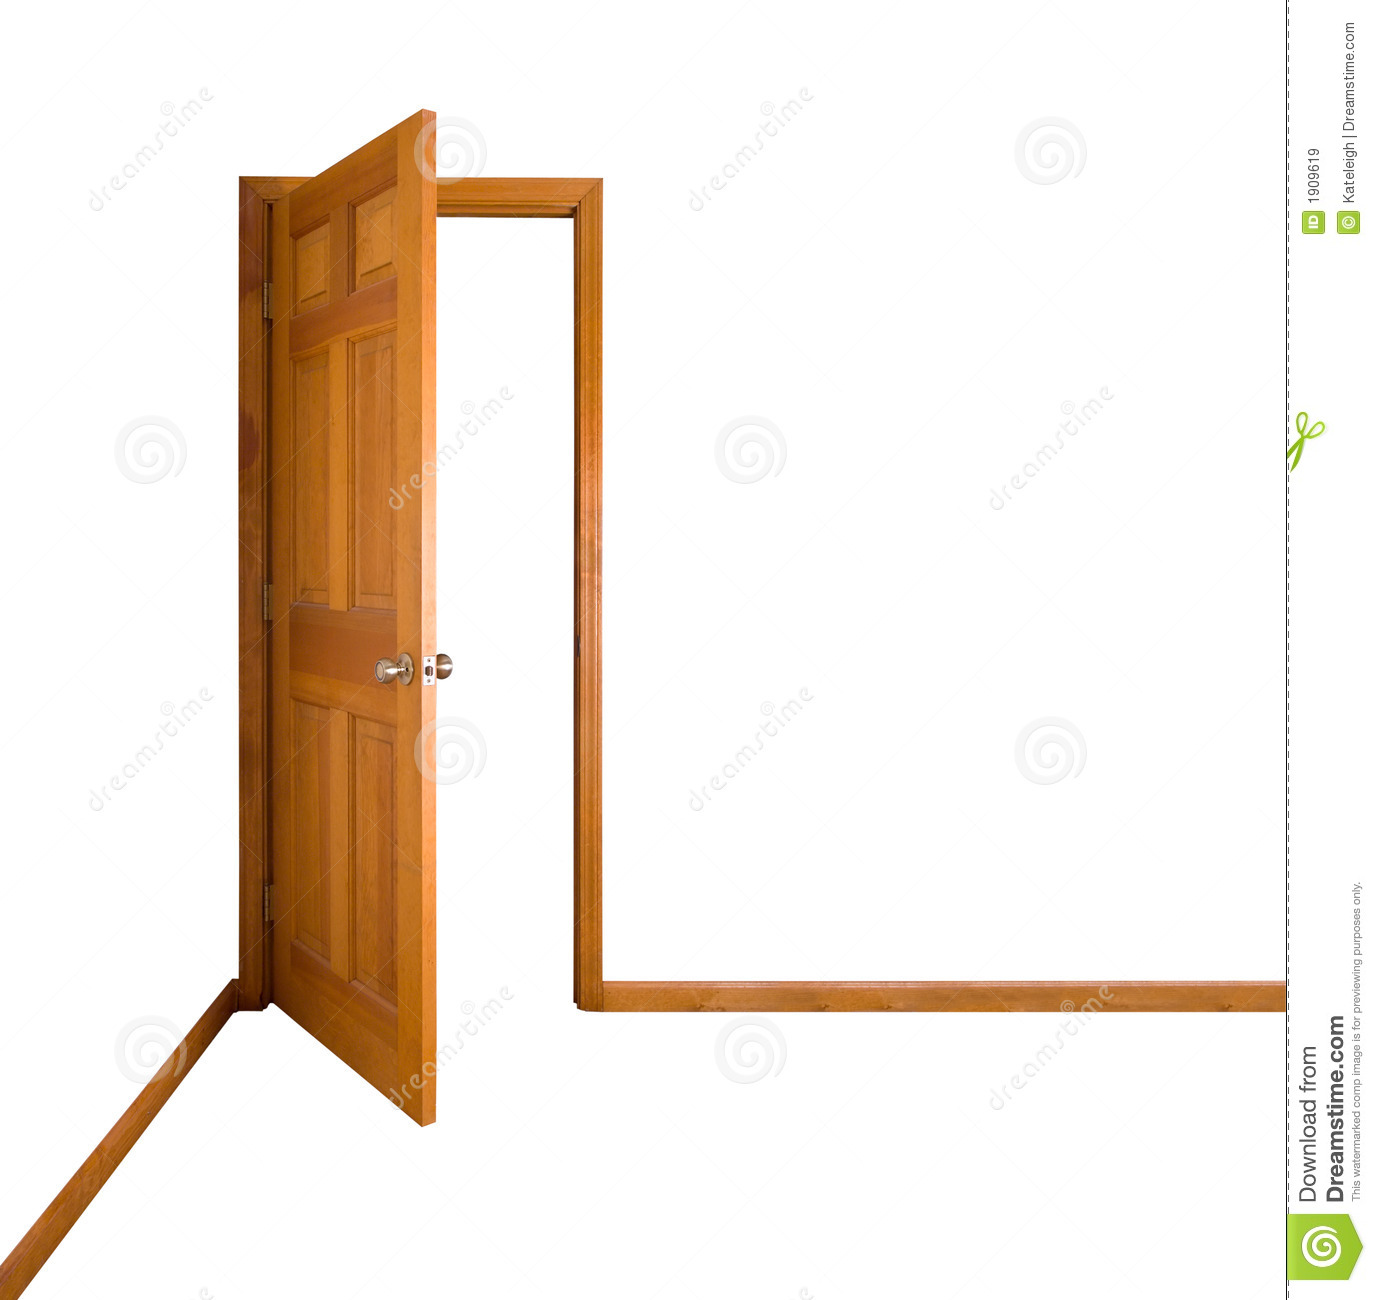 Clip Art Open Door Clipart open door free clipart kid there is 42 slowly cliparts all used for free